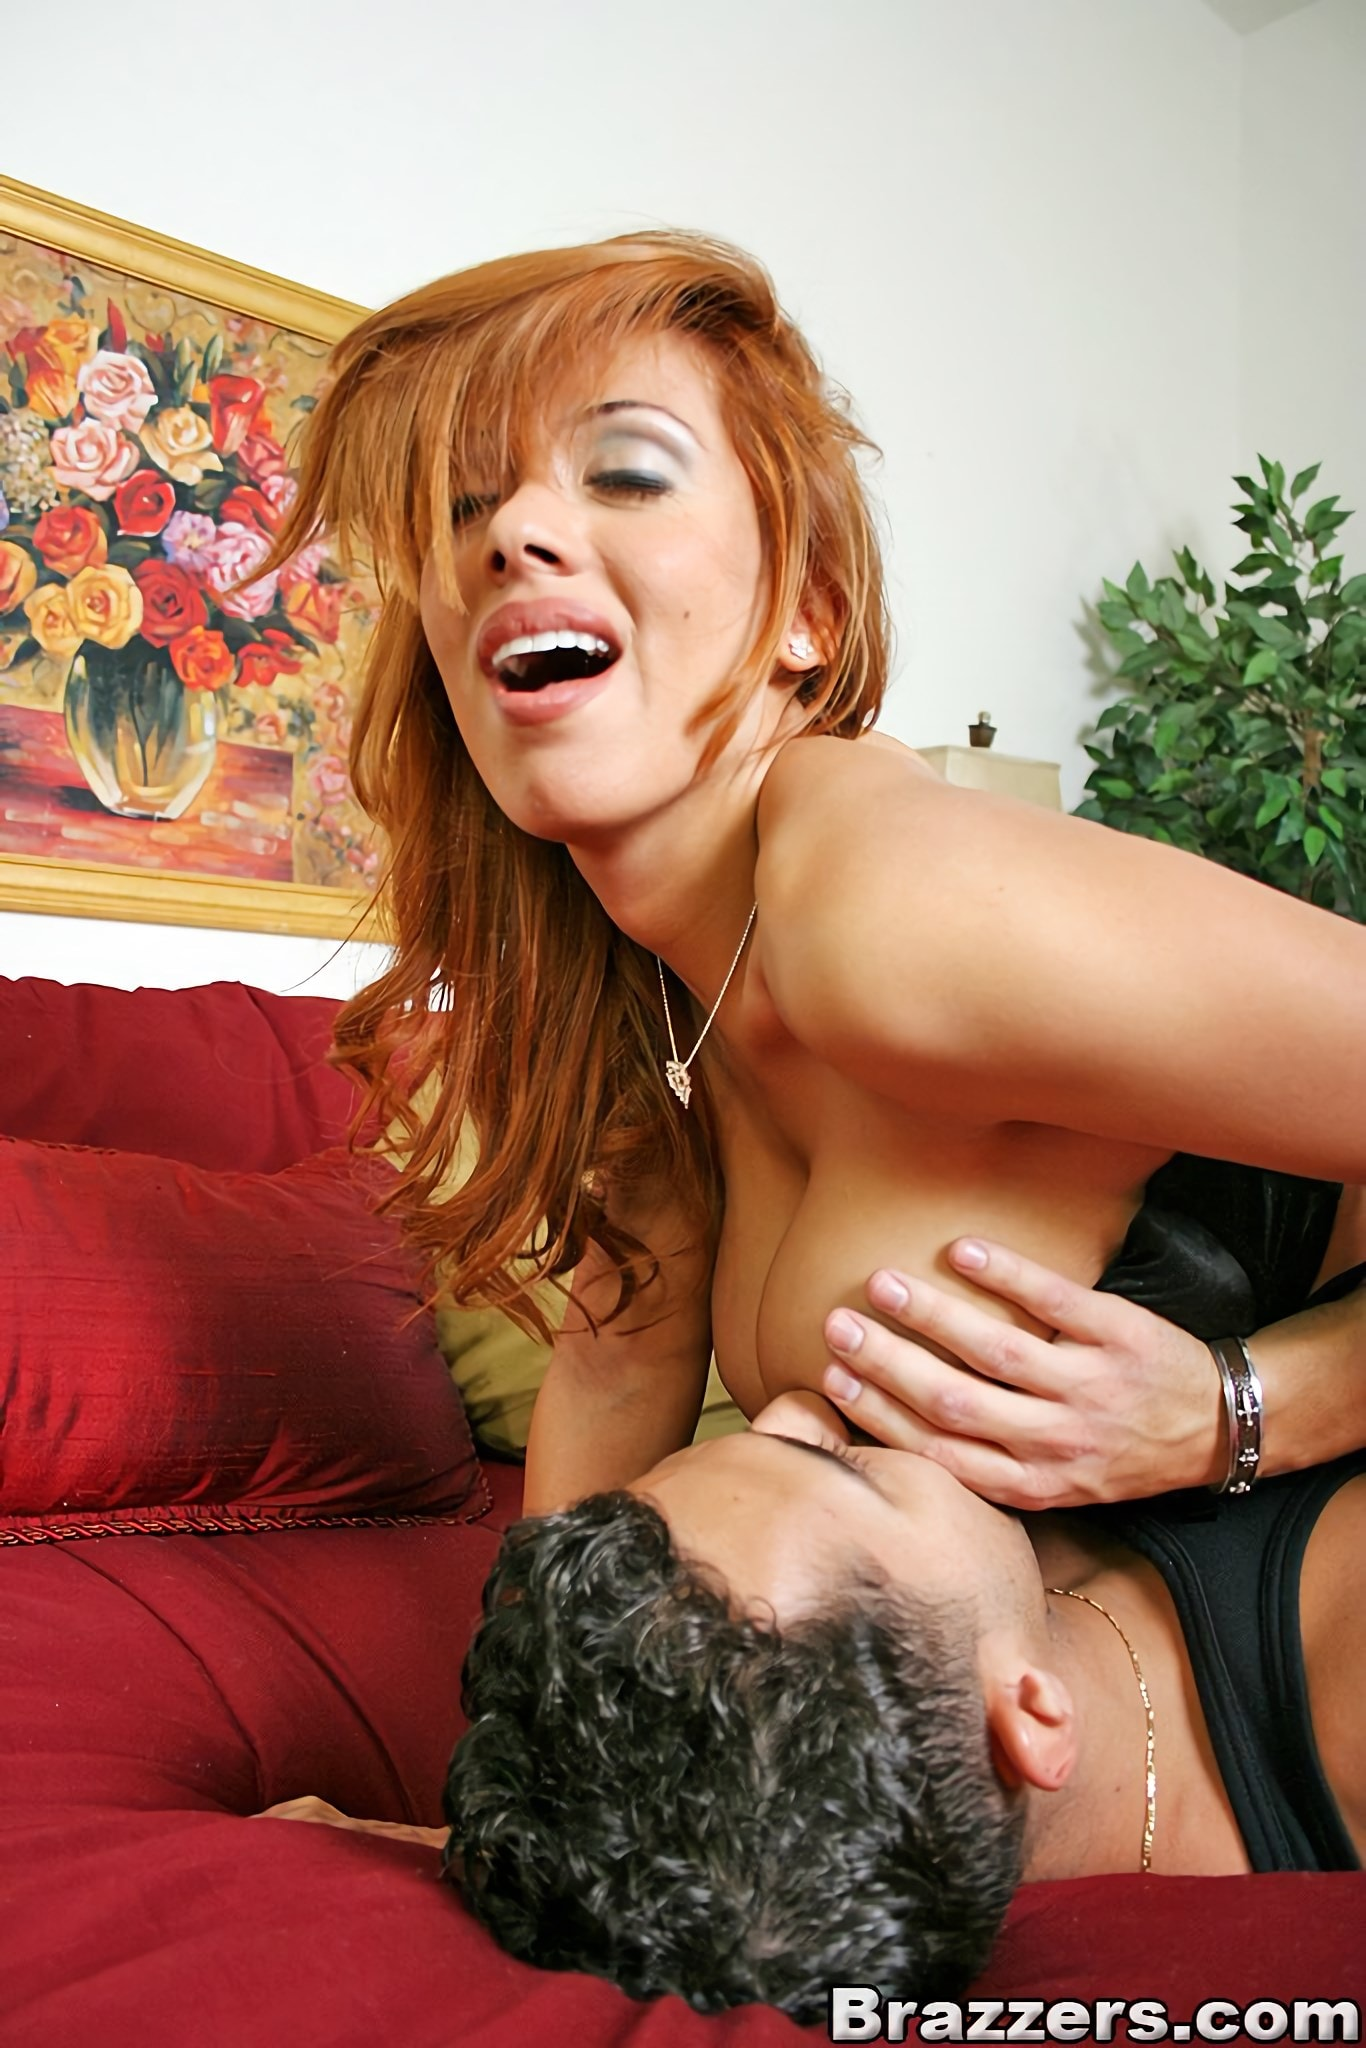 Hot latina fucking in country house